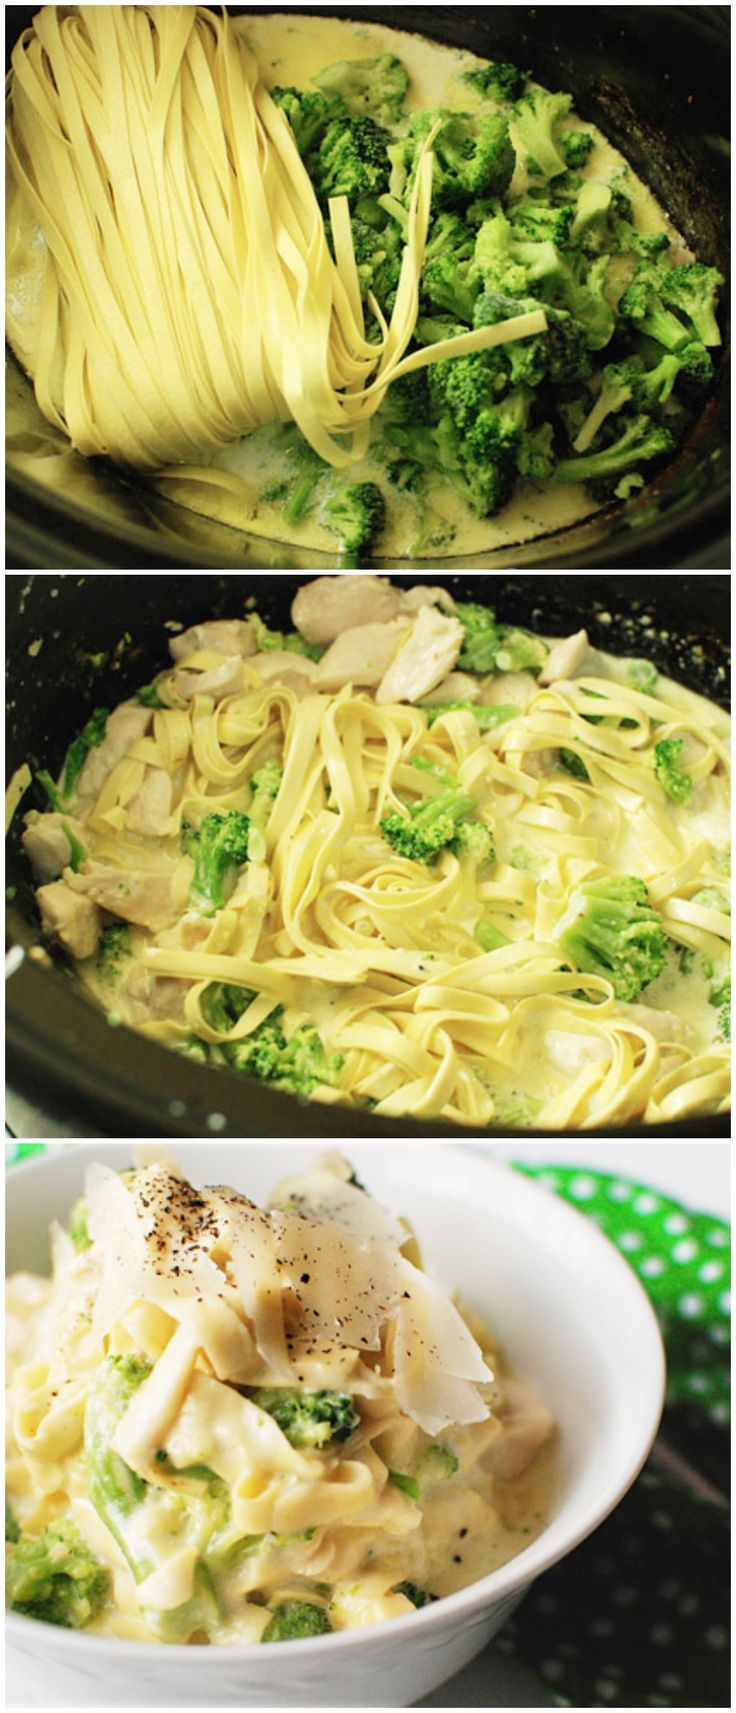 Crockpot Chicken Fettuccine Alfredo: Slowcook Chicken, Boneless Skinless Chicken, Slow Cooker Chicken, Fettuccine Alfredo, Crock Pots Chicken, Crockpot Chicken, Chicken Broccoli, Chicken Fettuccine, Chicken Breast